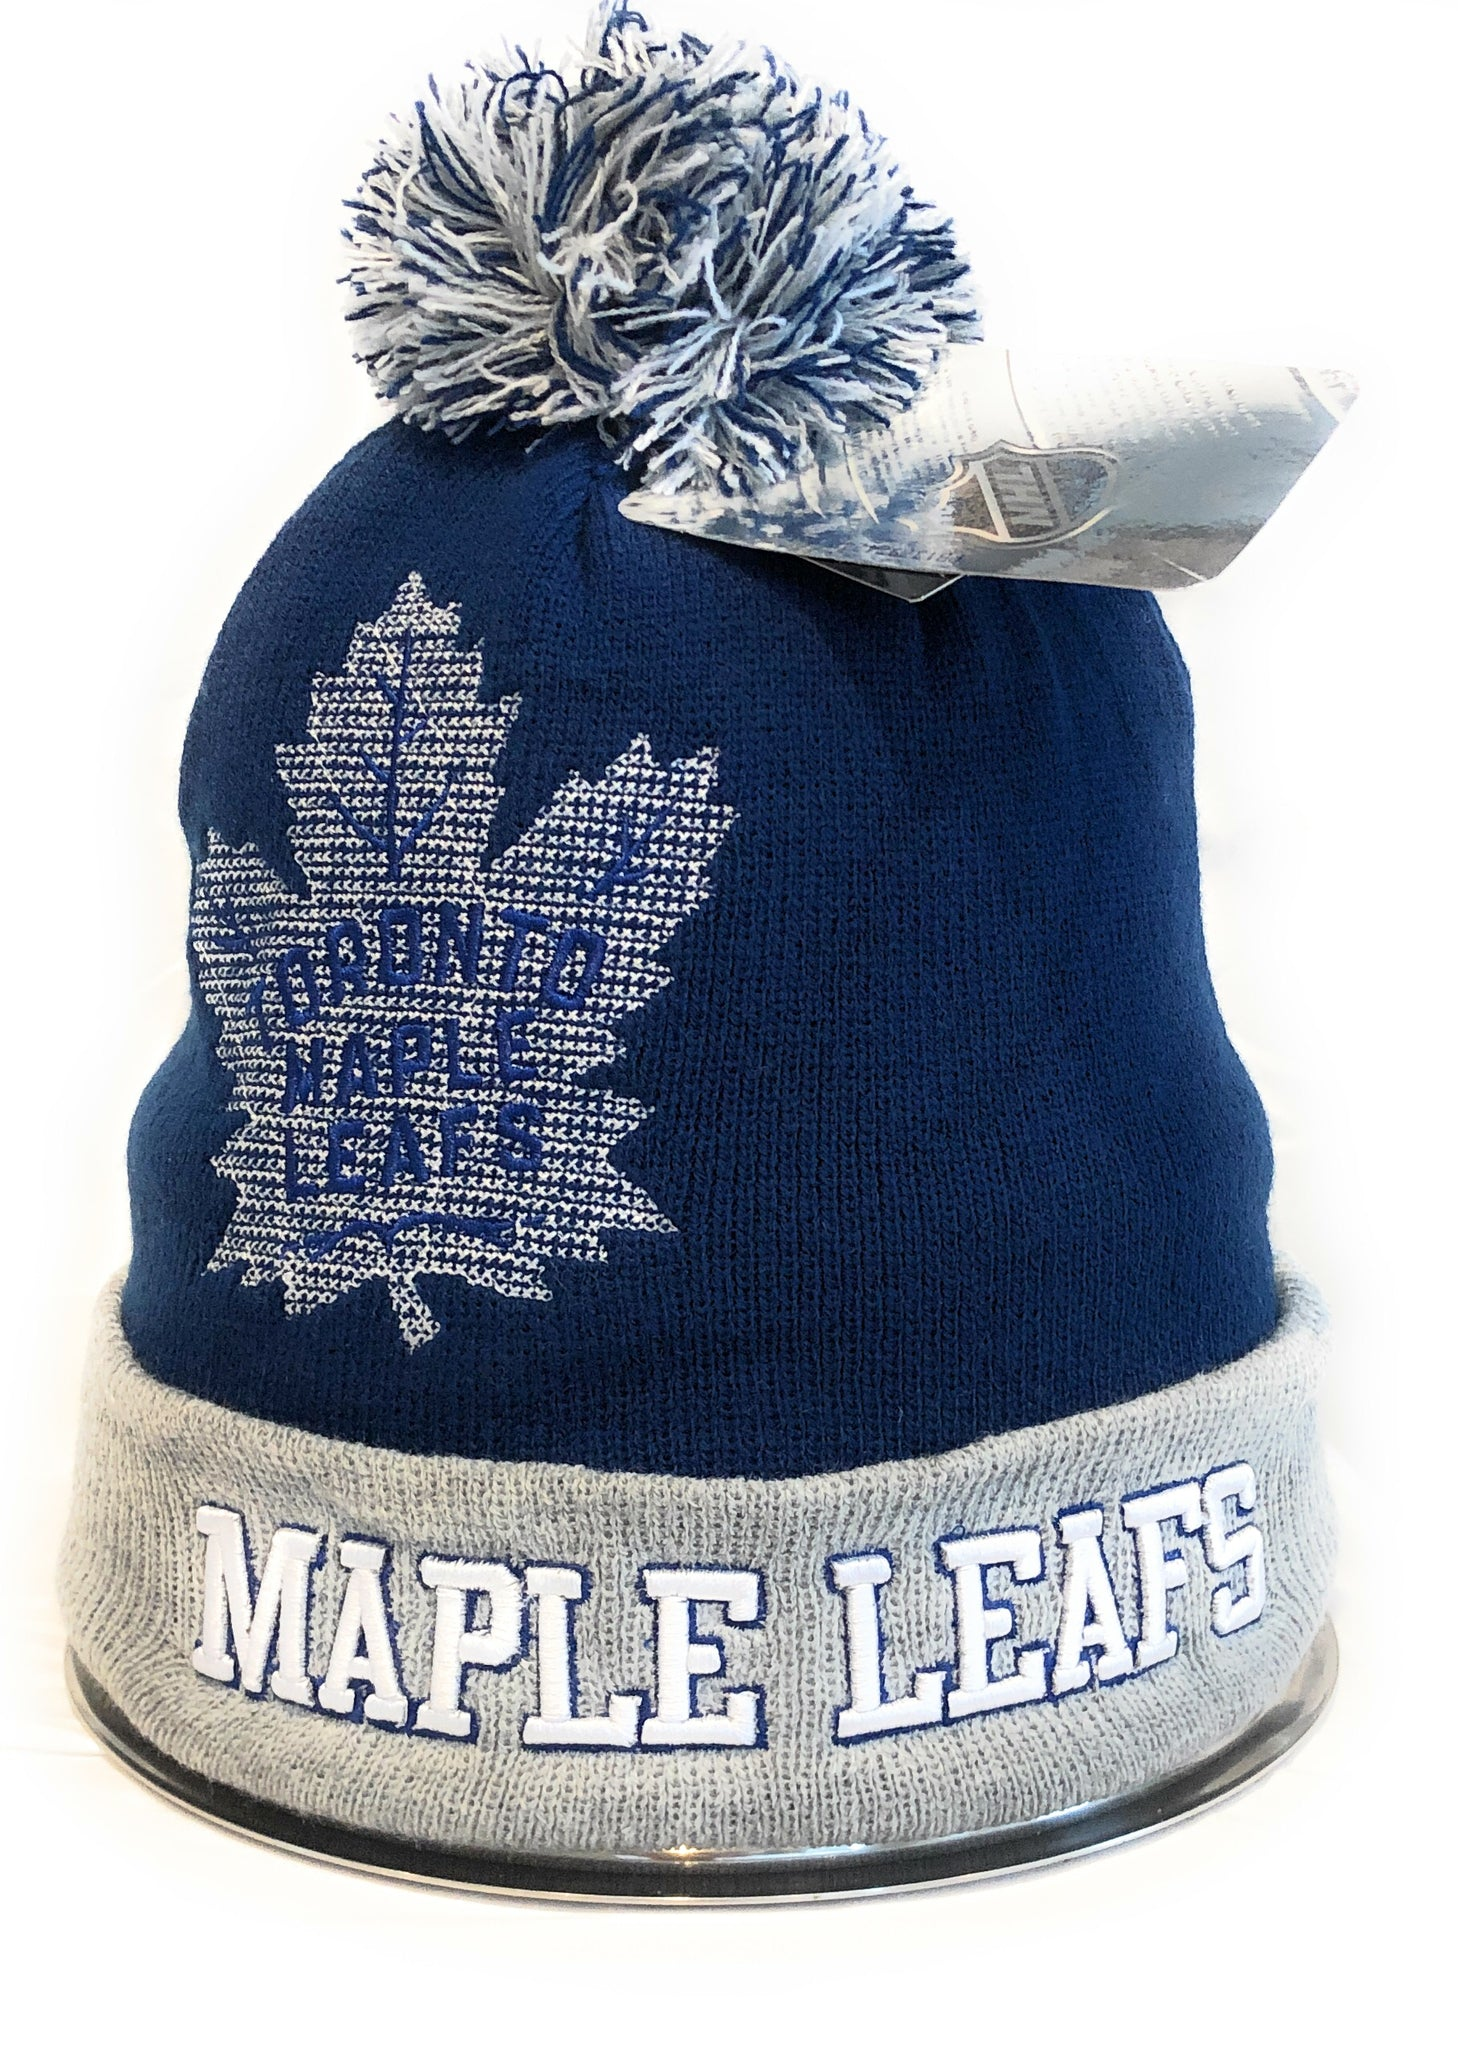 19deaa4eace ... Toronto Maple Leafs NHL Licenced Winter Bundle (Beanie